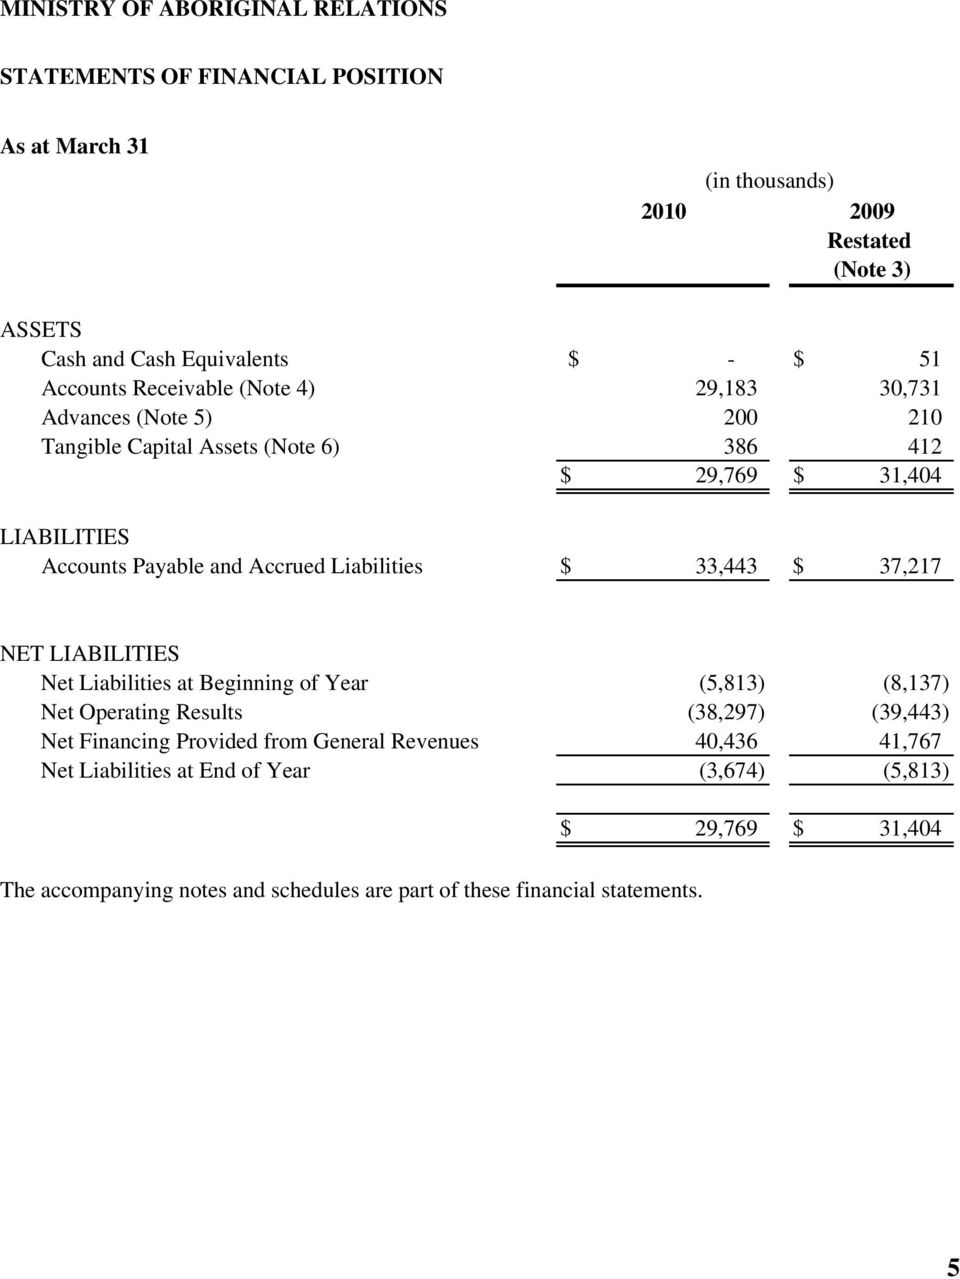 Liabilities $ 33,443 $ 37,217 NET LIABILITIES Net Liabilities at Beginning of Year (5,813) (8,137) Net Operating Results (38,297) (39,443) Net Financing Provided